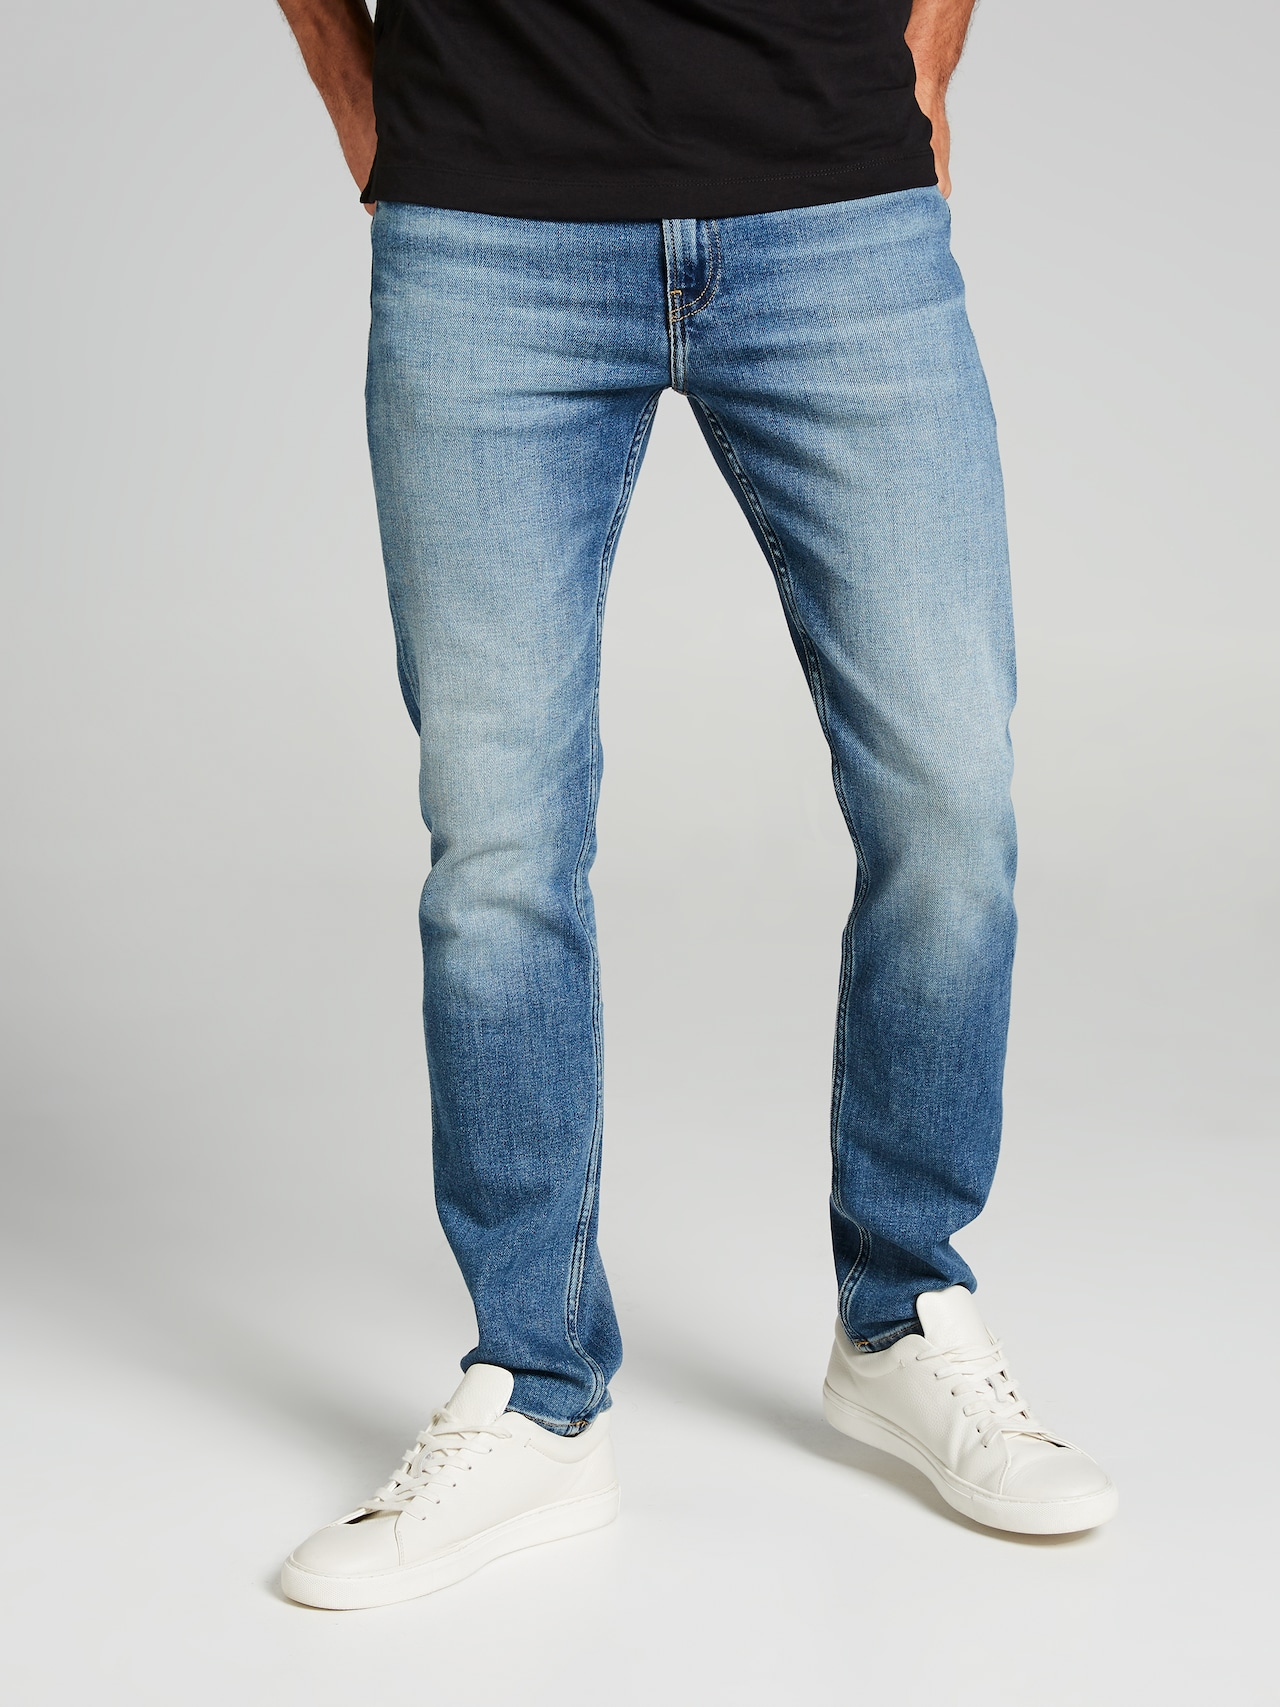 gift Nationell Att öka  Calvin Klein Slim Taper In Dark Blue Denim - Just Jeans Online